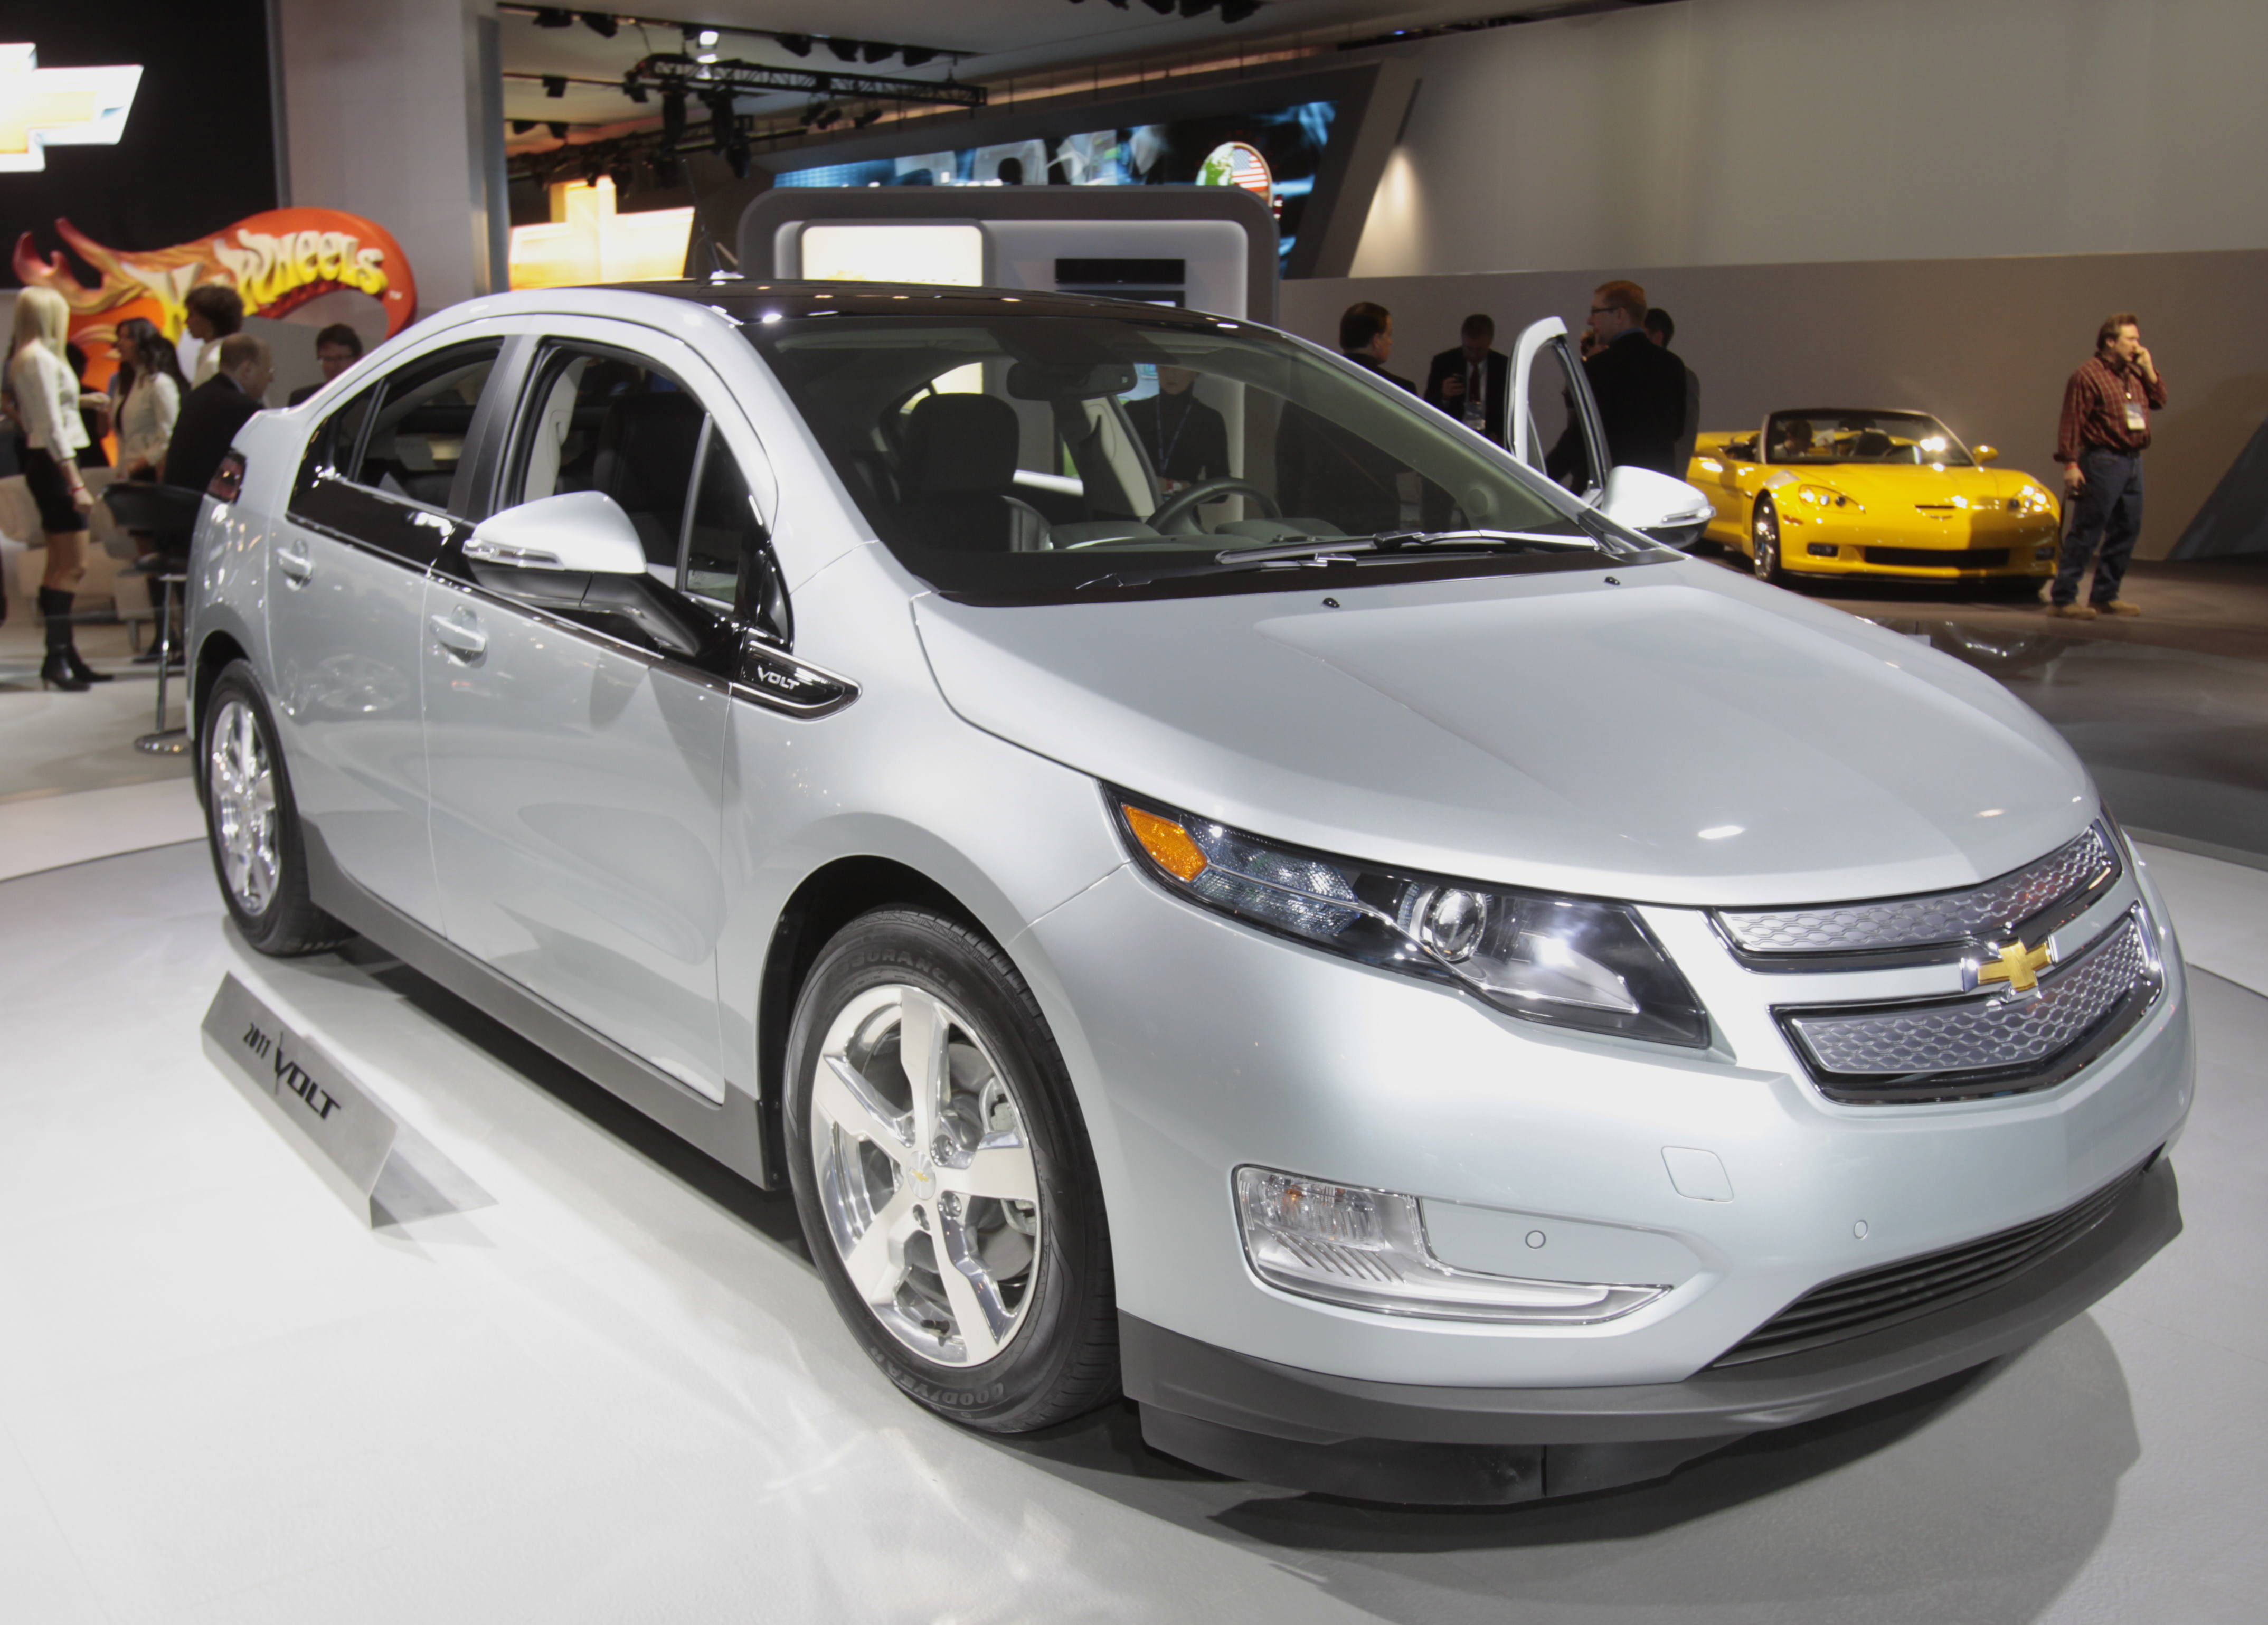 Chevy Volt Explorer By Ford Lauded At Auto Show The Blade Car